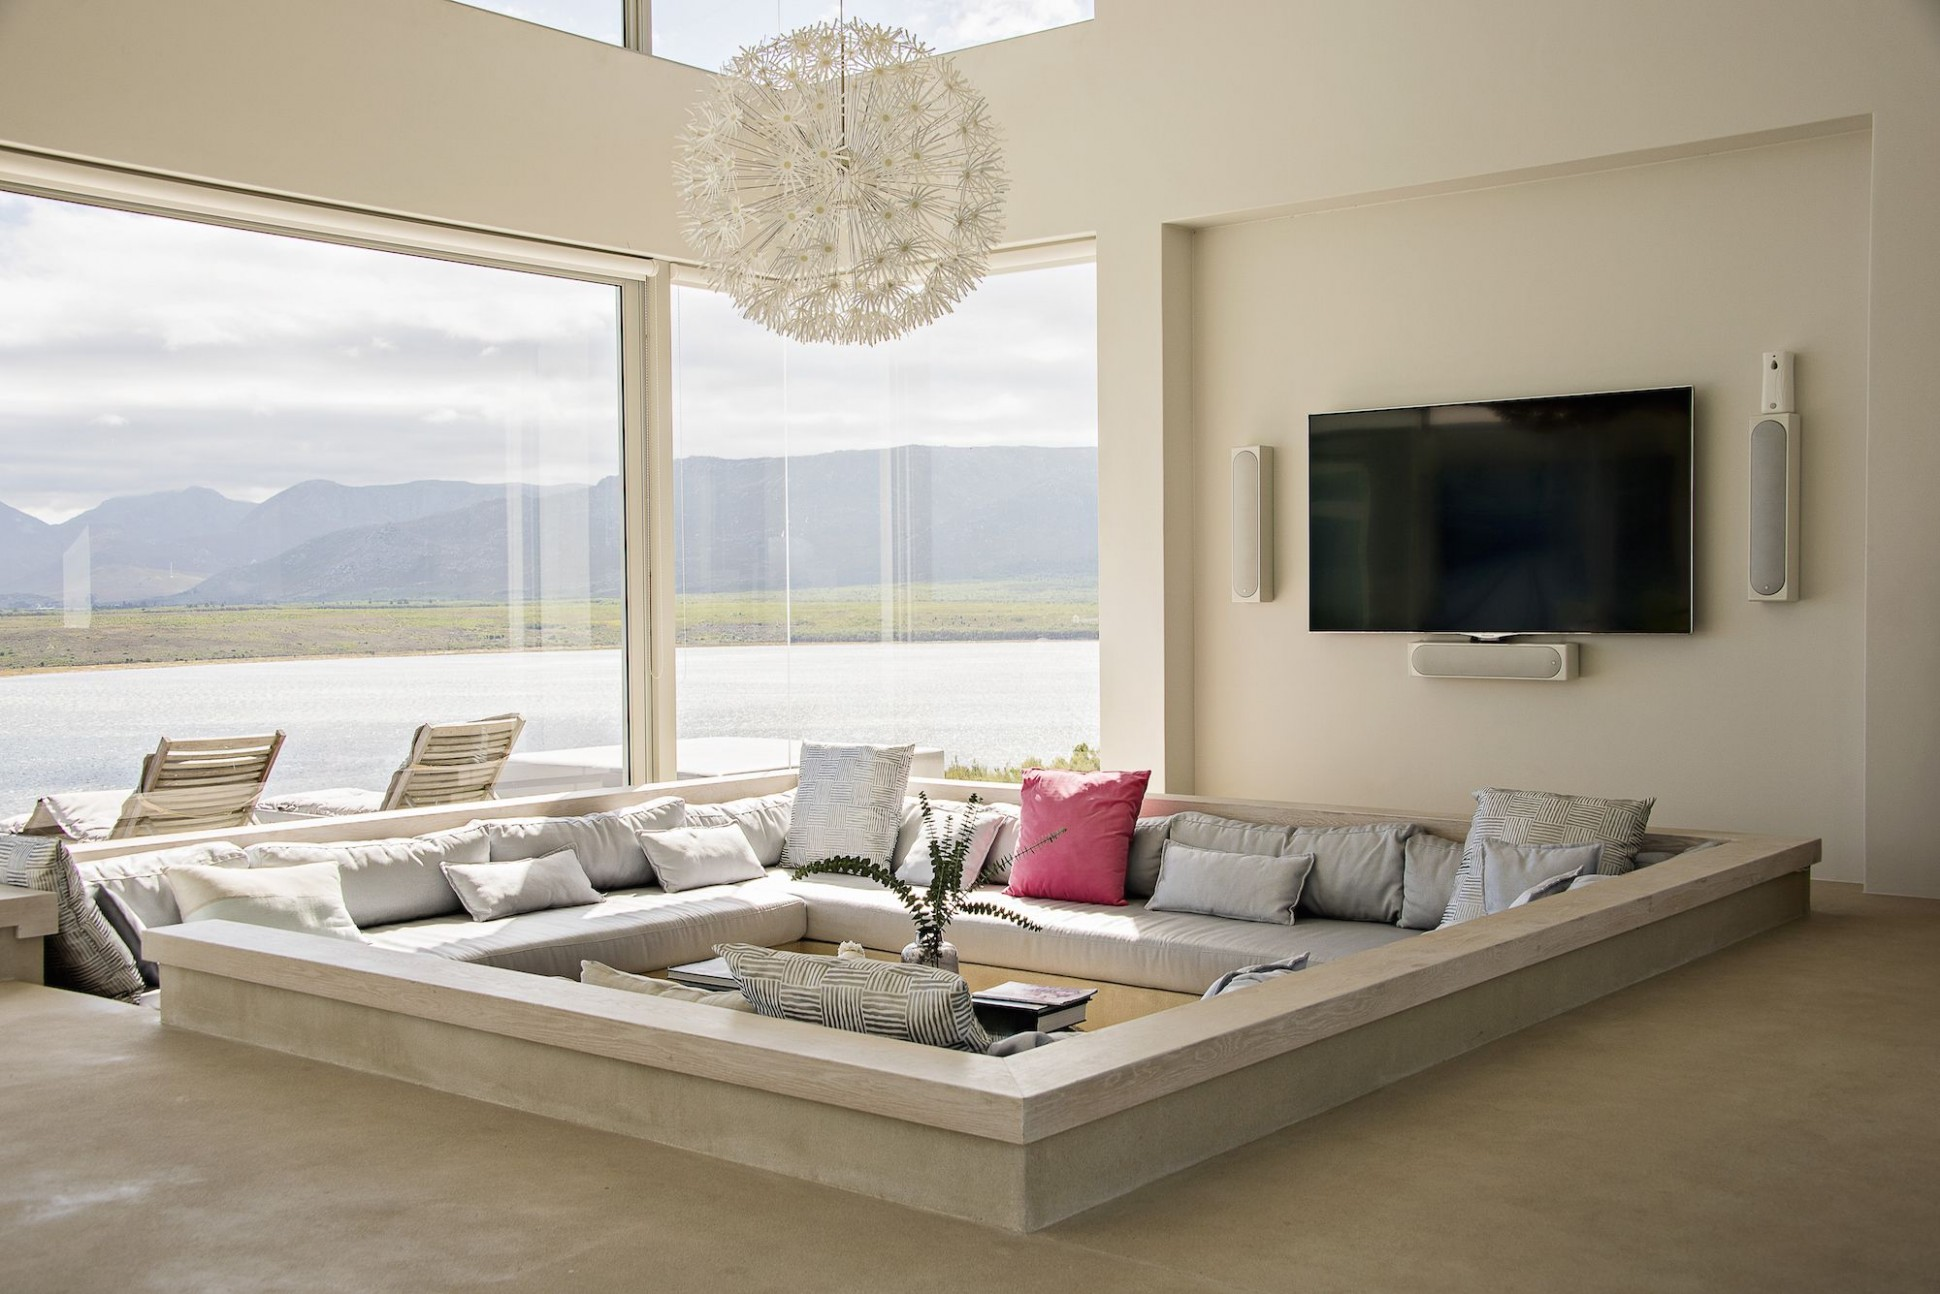 Living Room Vs Family Room - Difference Between Living Room And .. | living room or family room